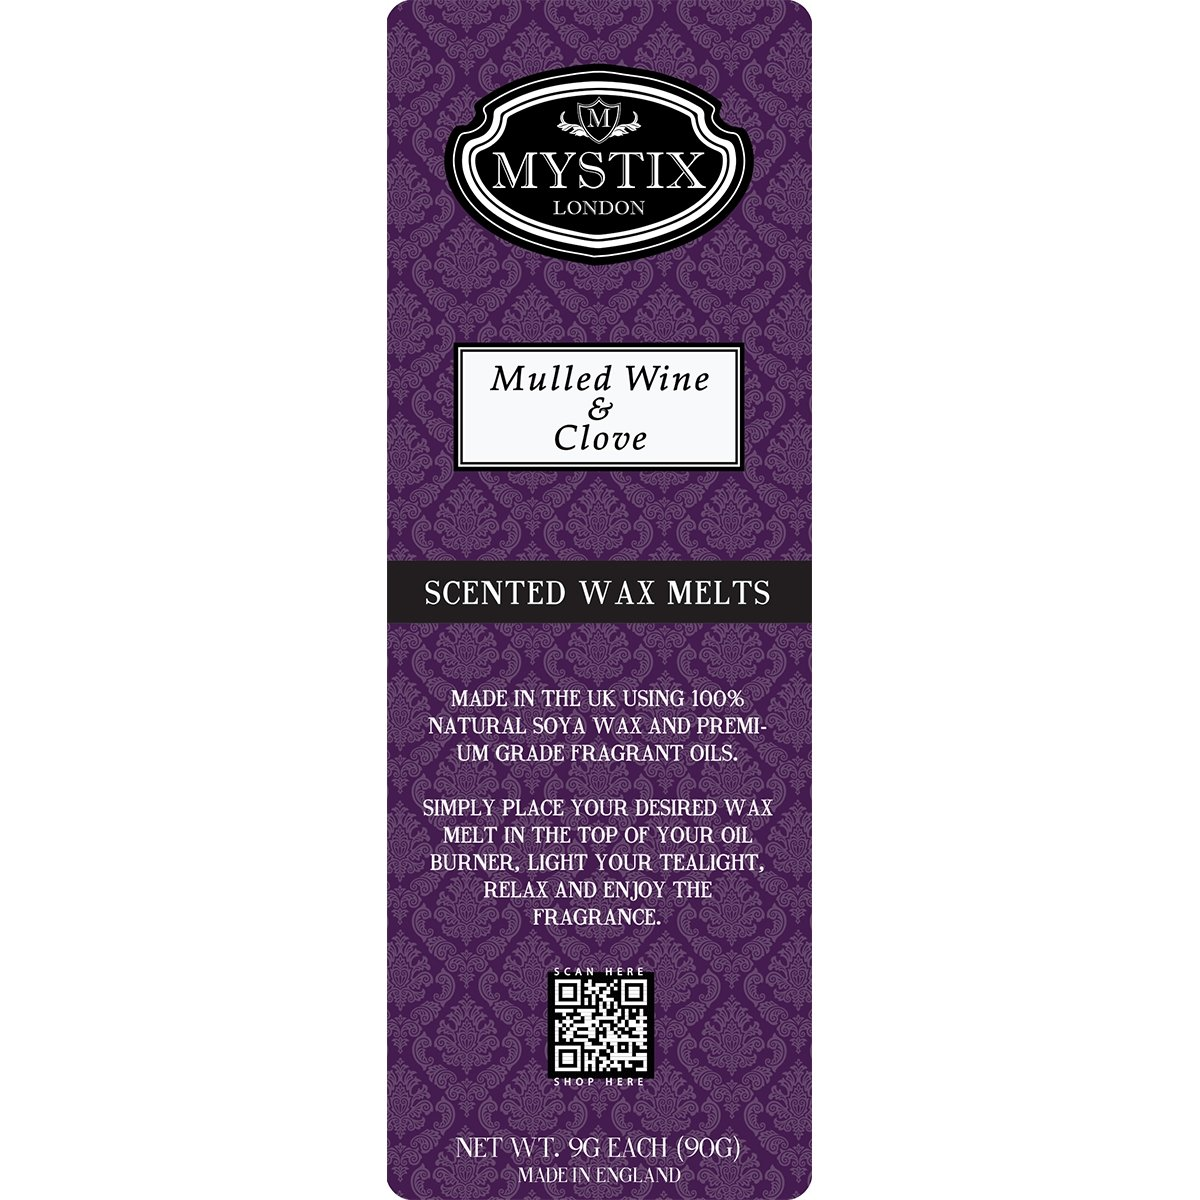 Mulled Wine & Clove | Wax Melt Clamshell - Mystic Moments UK